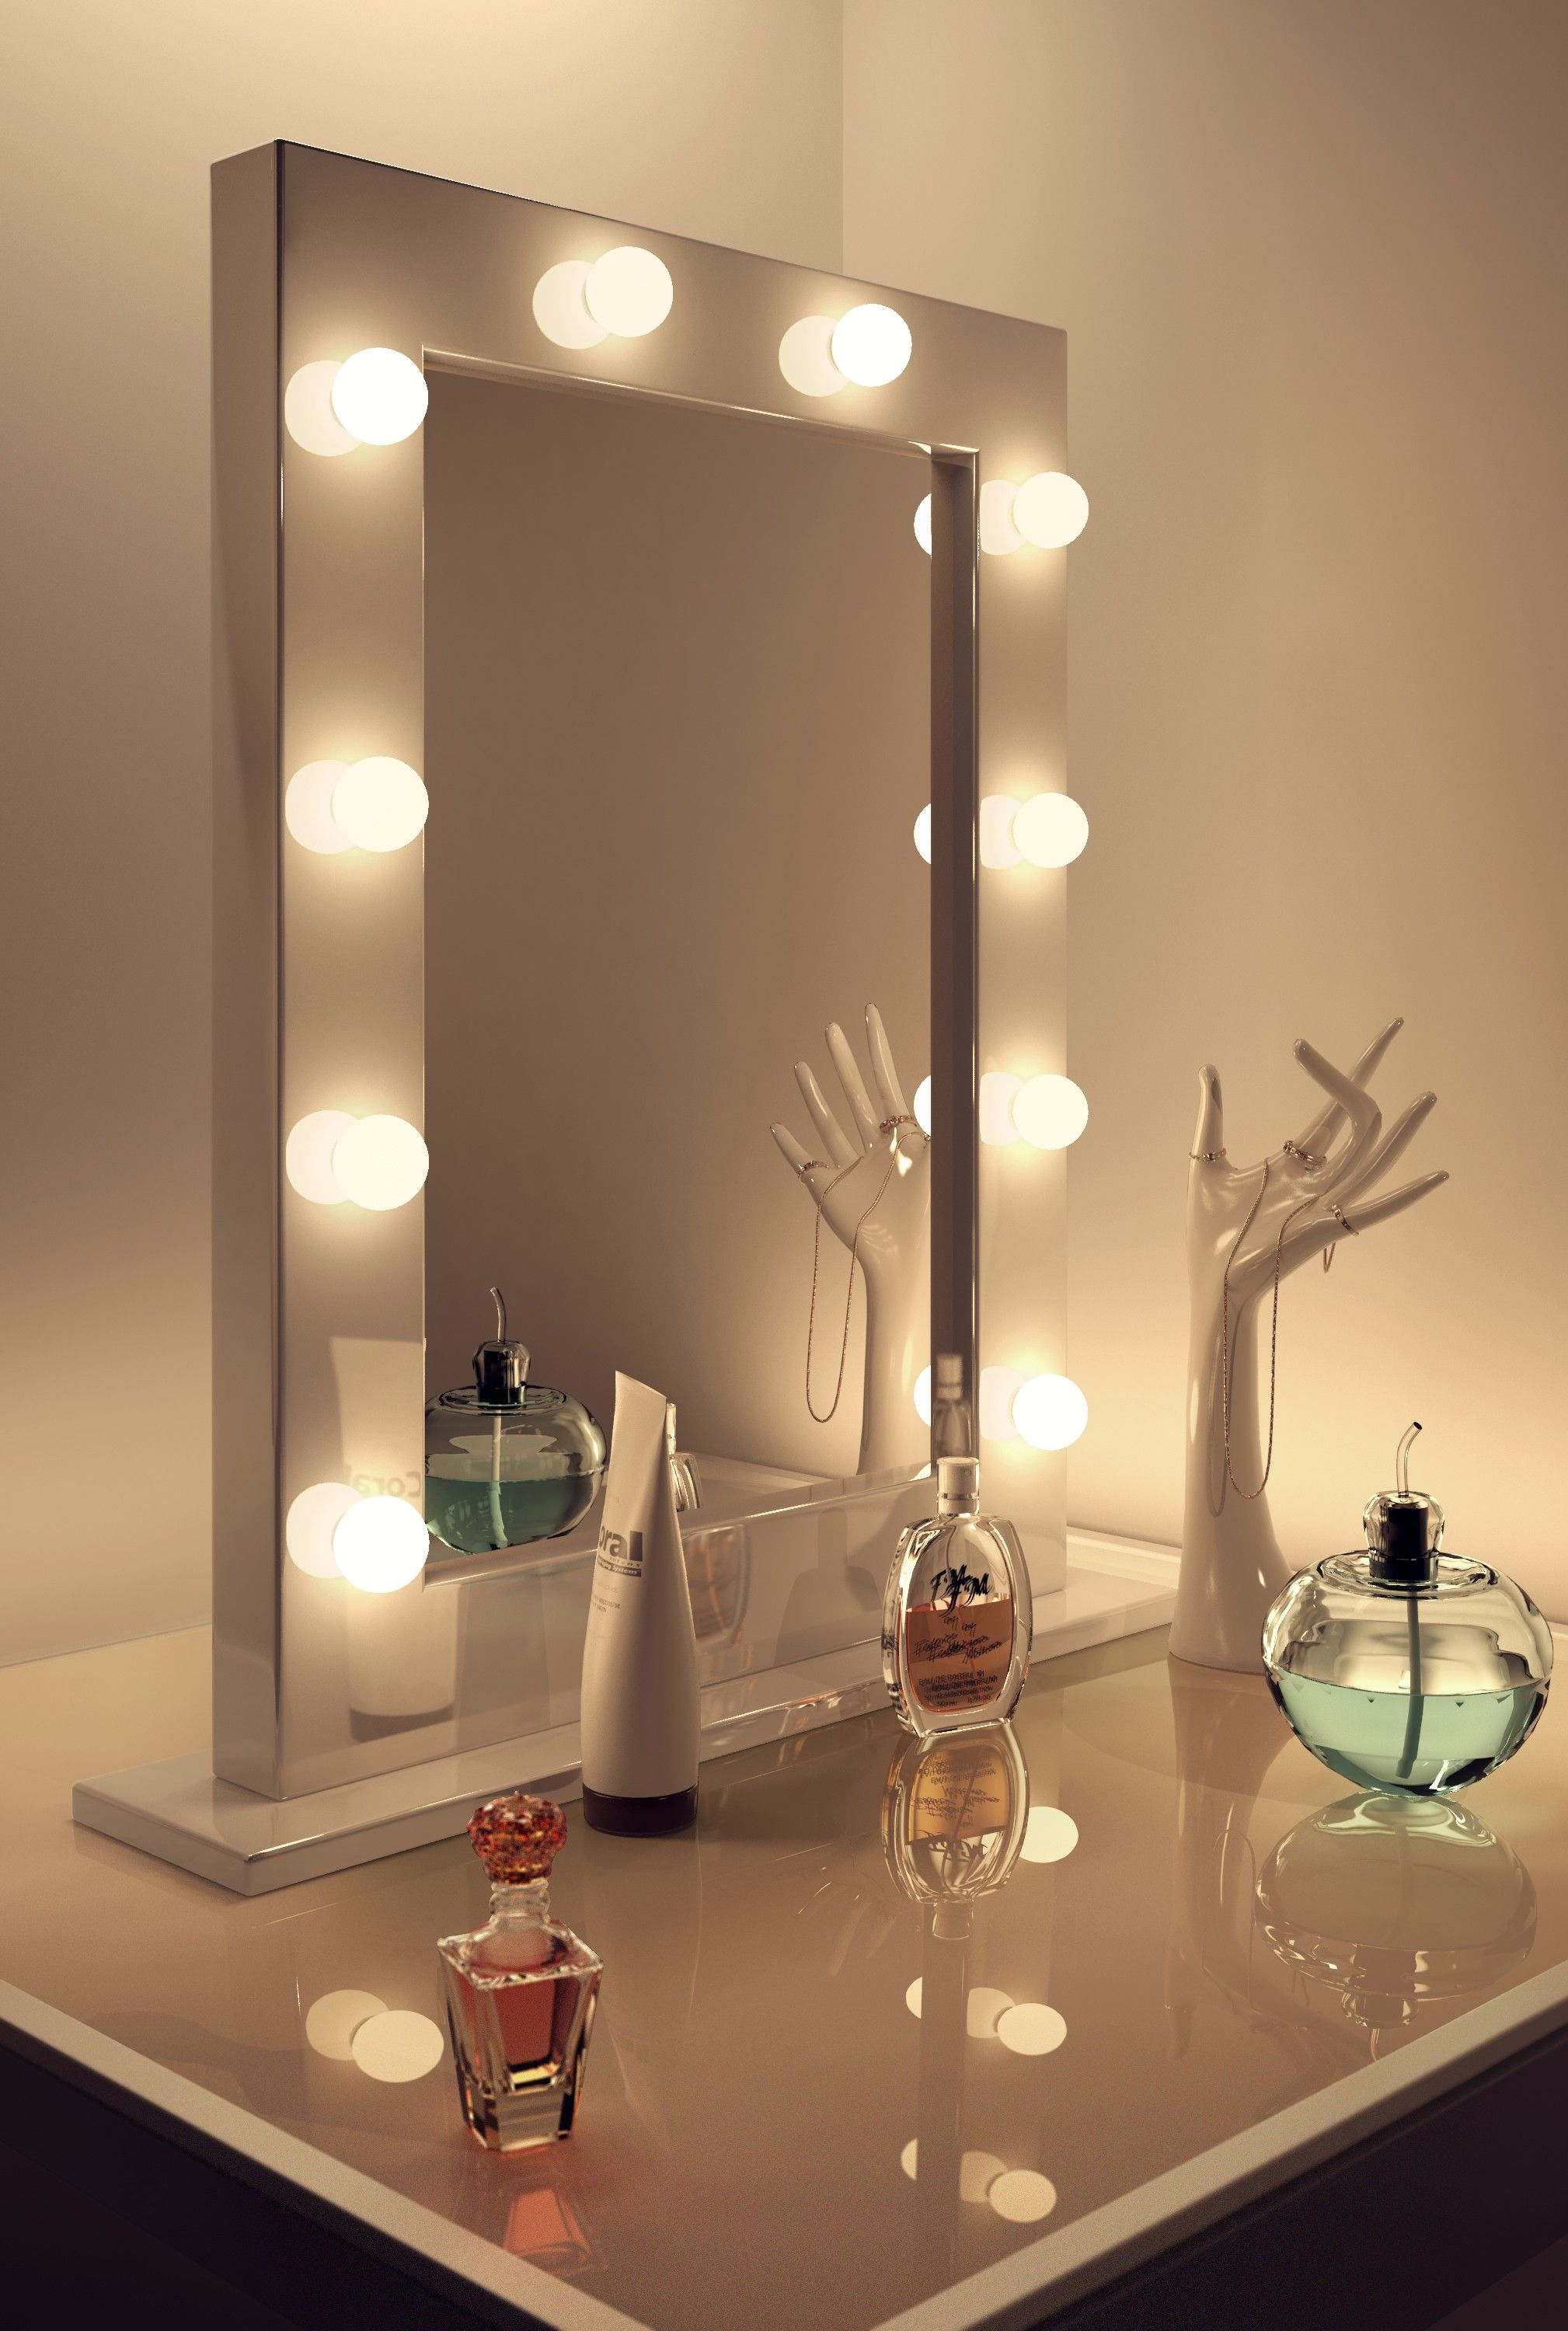 Importance Of Vanity Mirrors With Lights Light Decorating Ideas - Making a vanity mirror